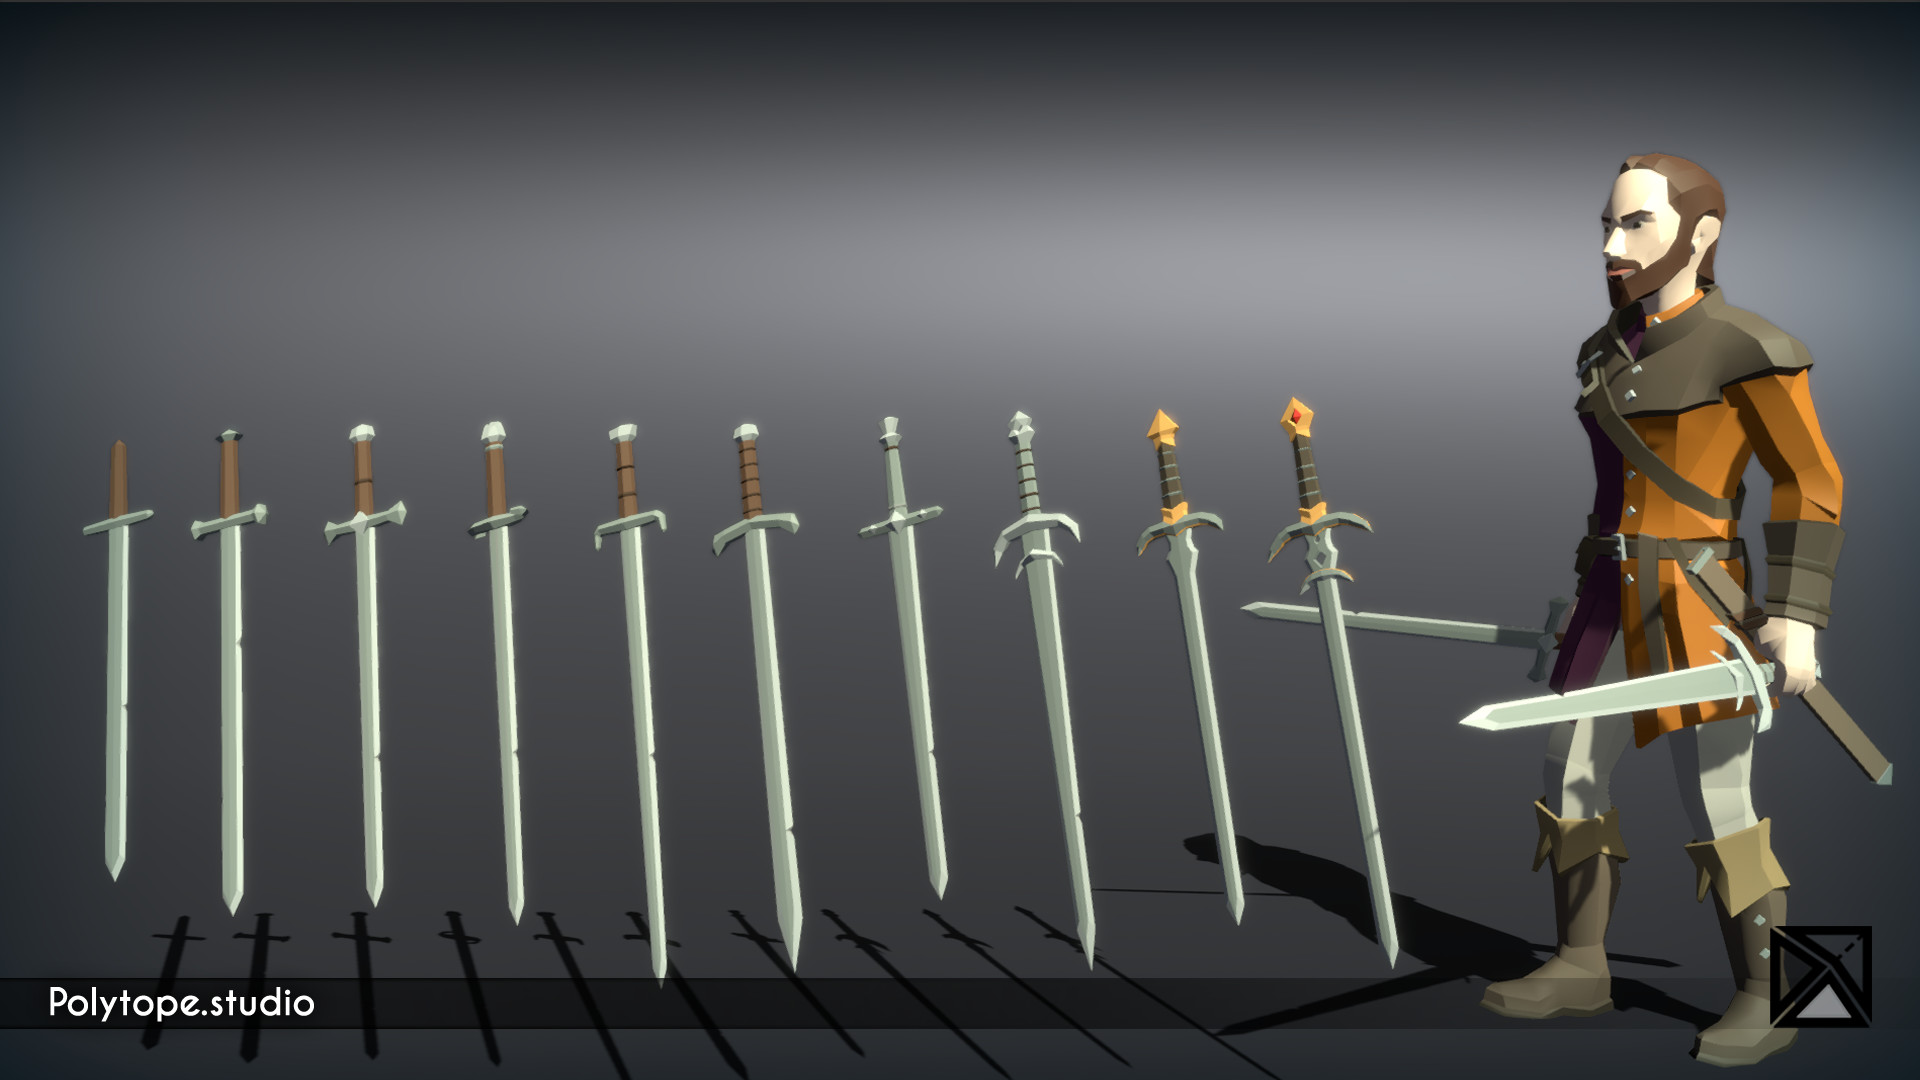 Polytope studio pt medieval lowpoly weapons sword